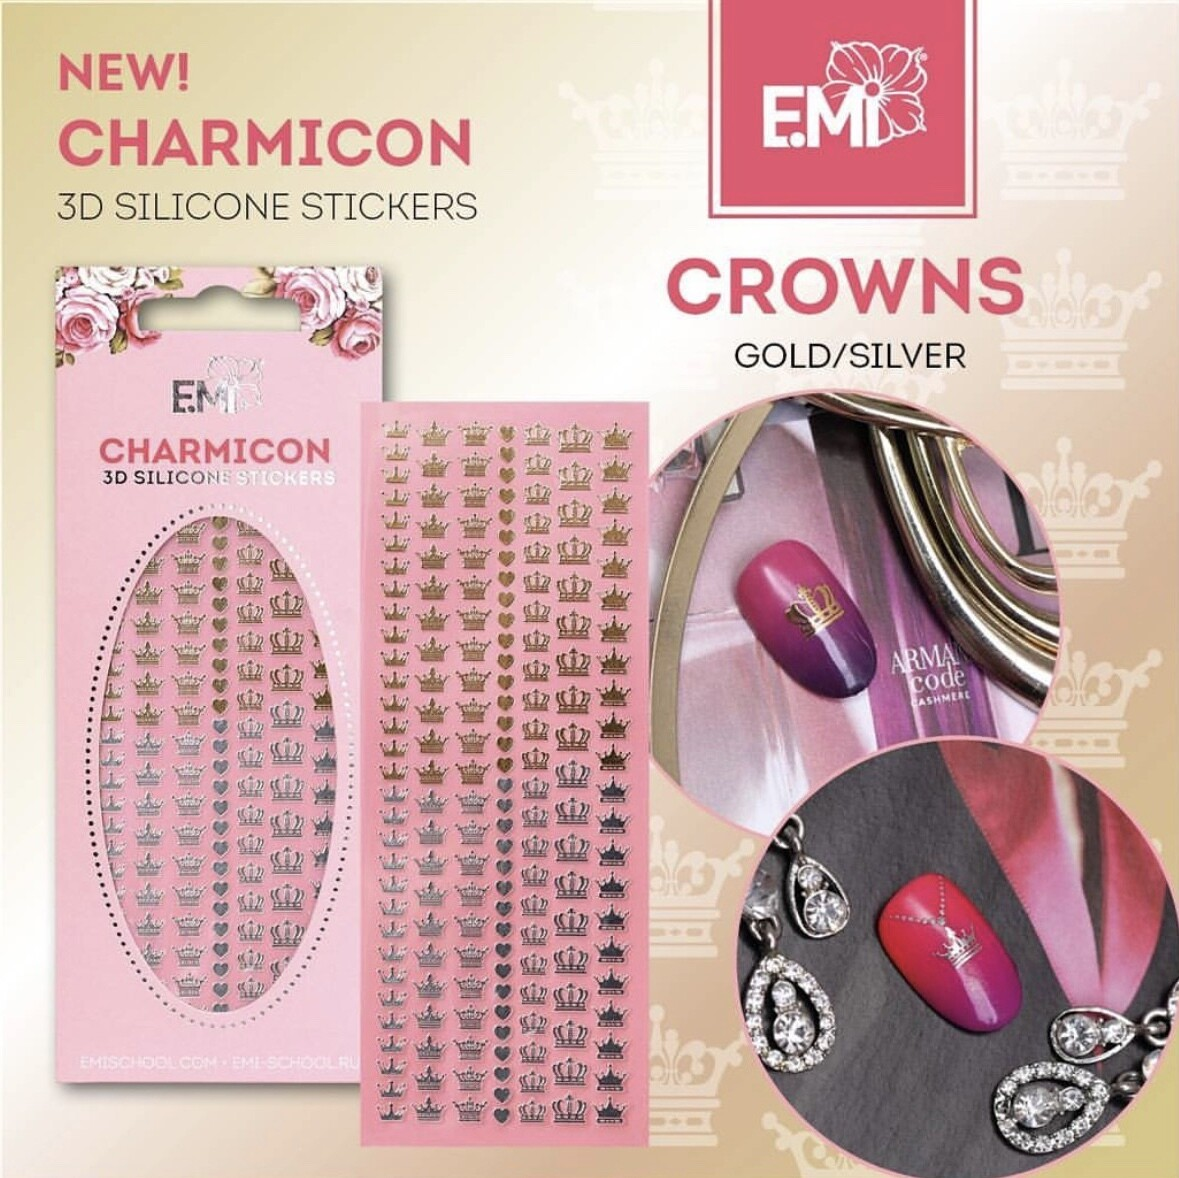 Charmicon Silicone Stickers Crowns Gold/Silver